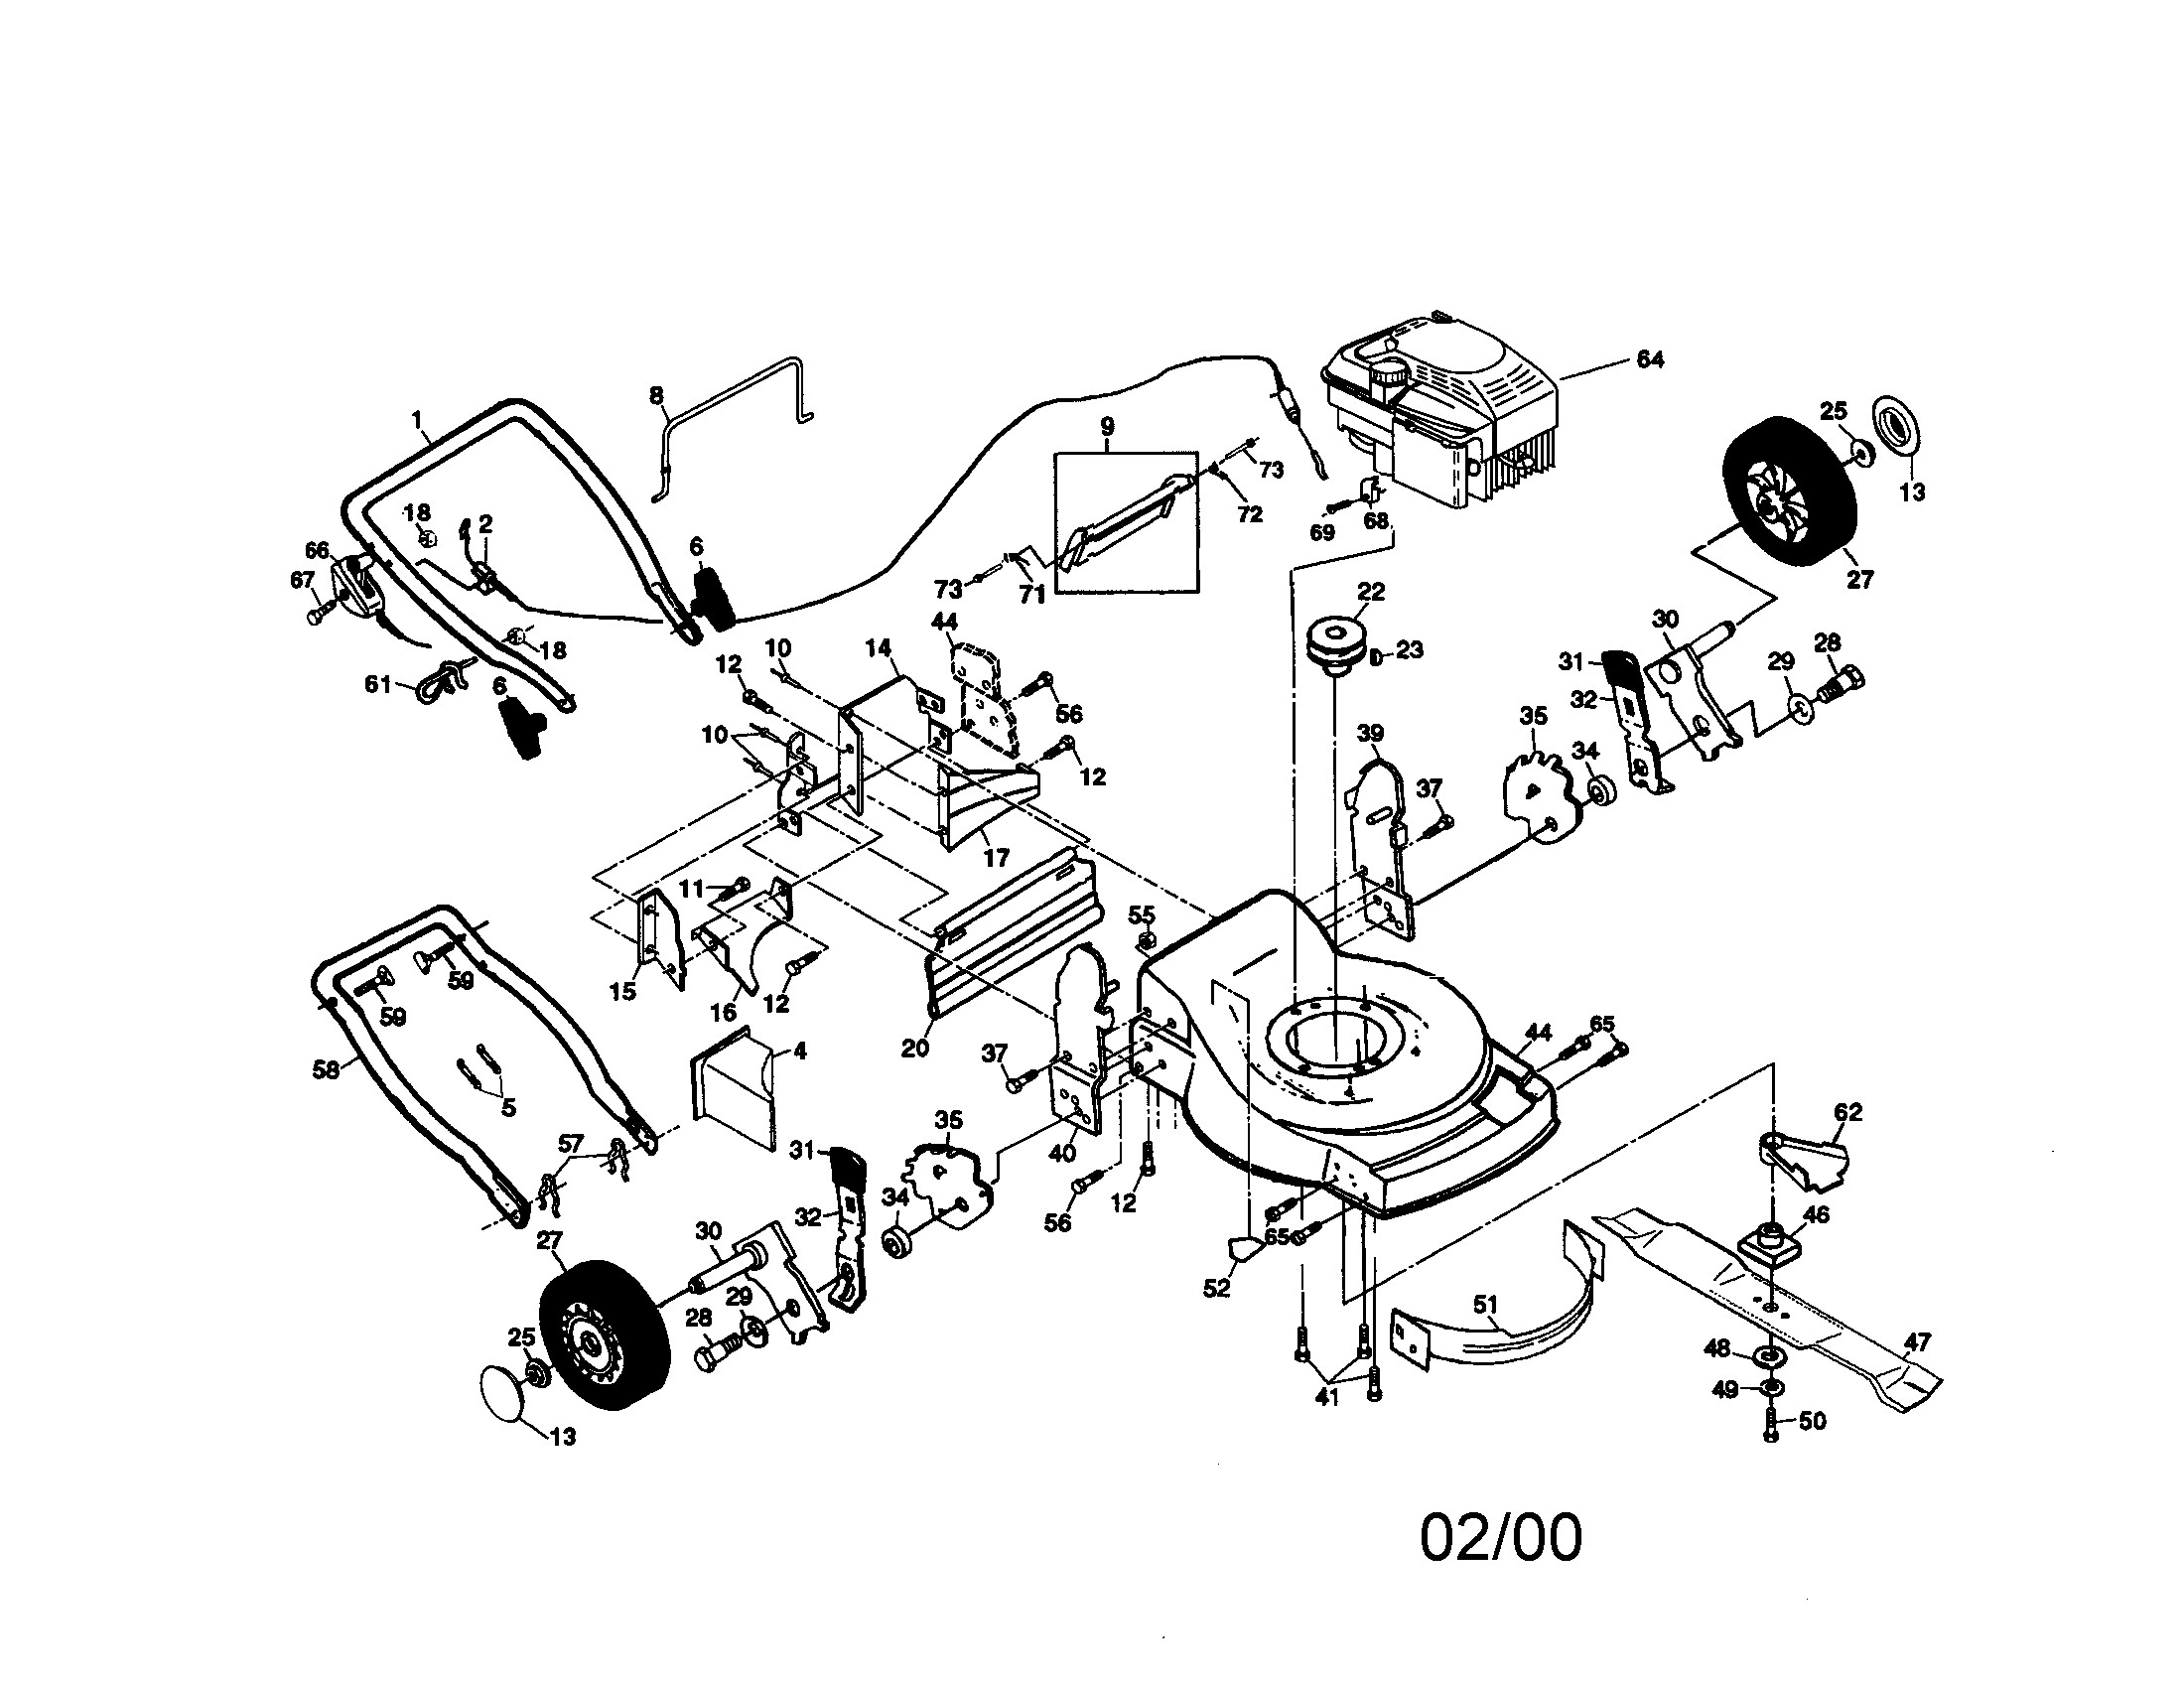 craftsman lawn mower engine parts diagram craftsman 19 5